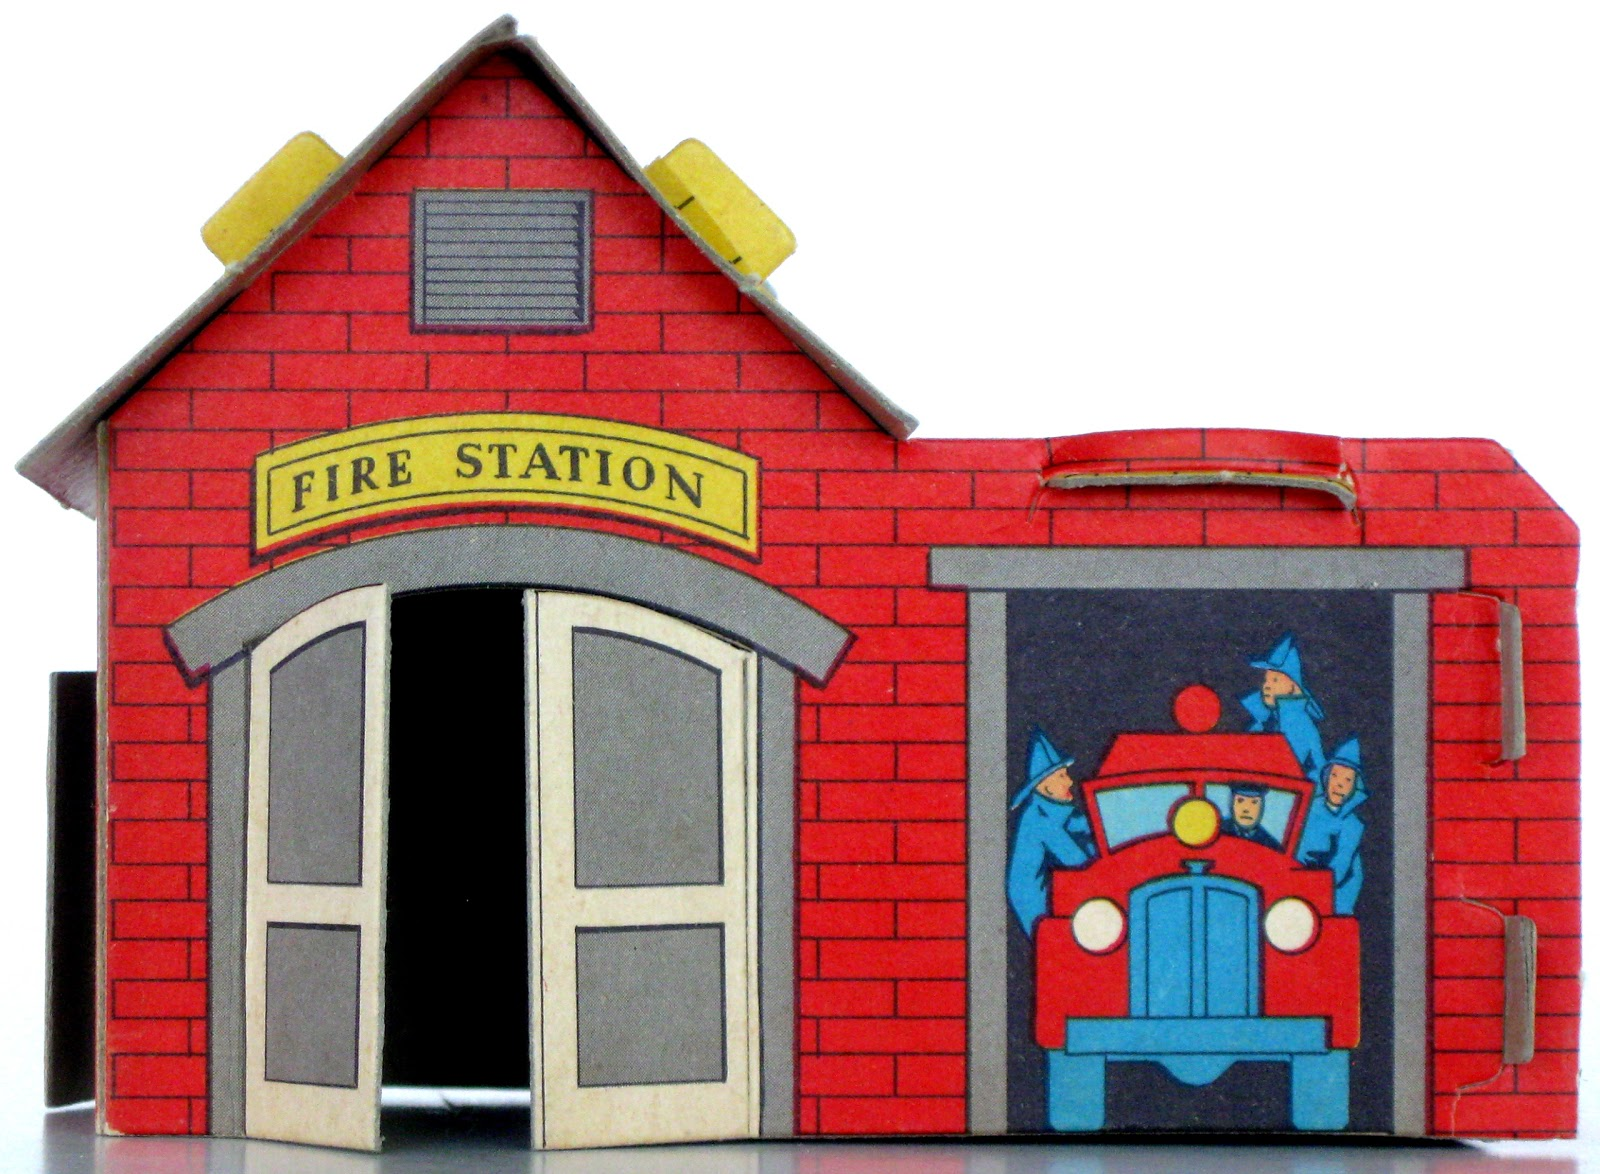 Fire Station Clipart - Clipart Kid